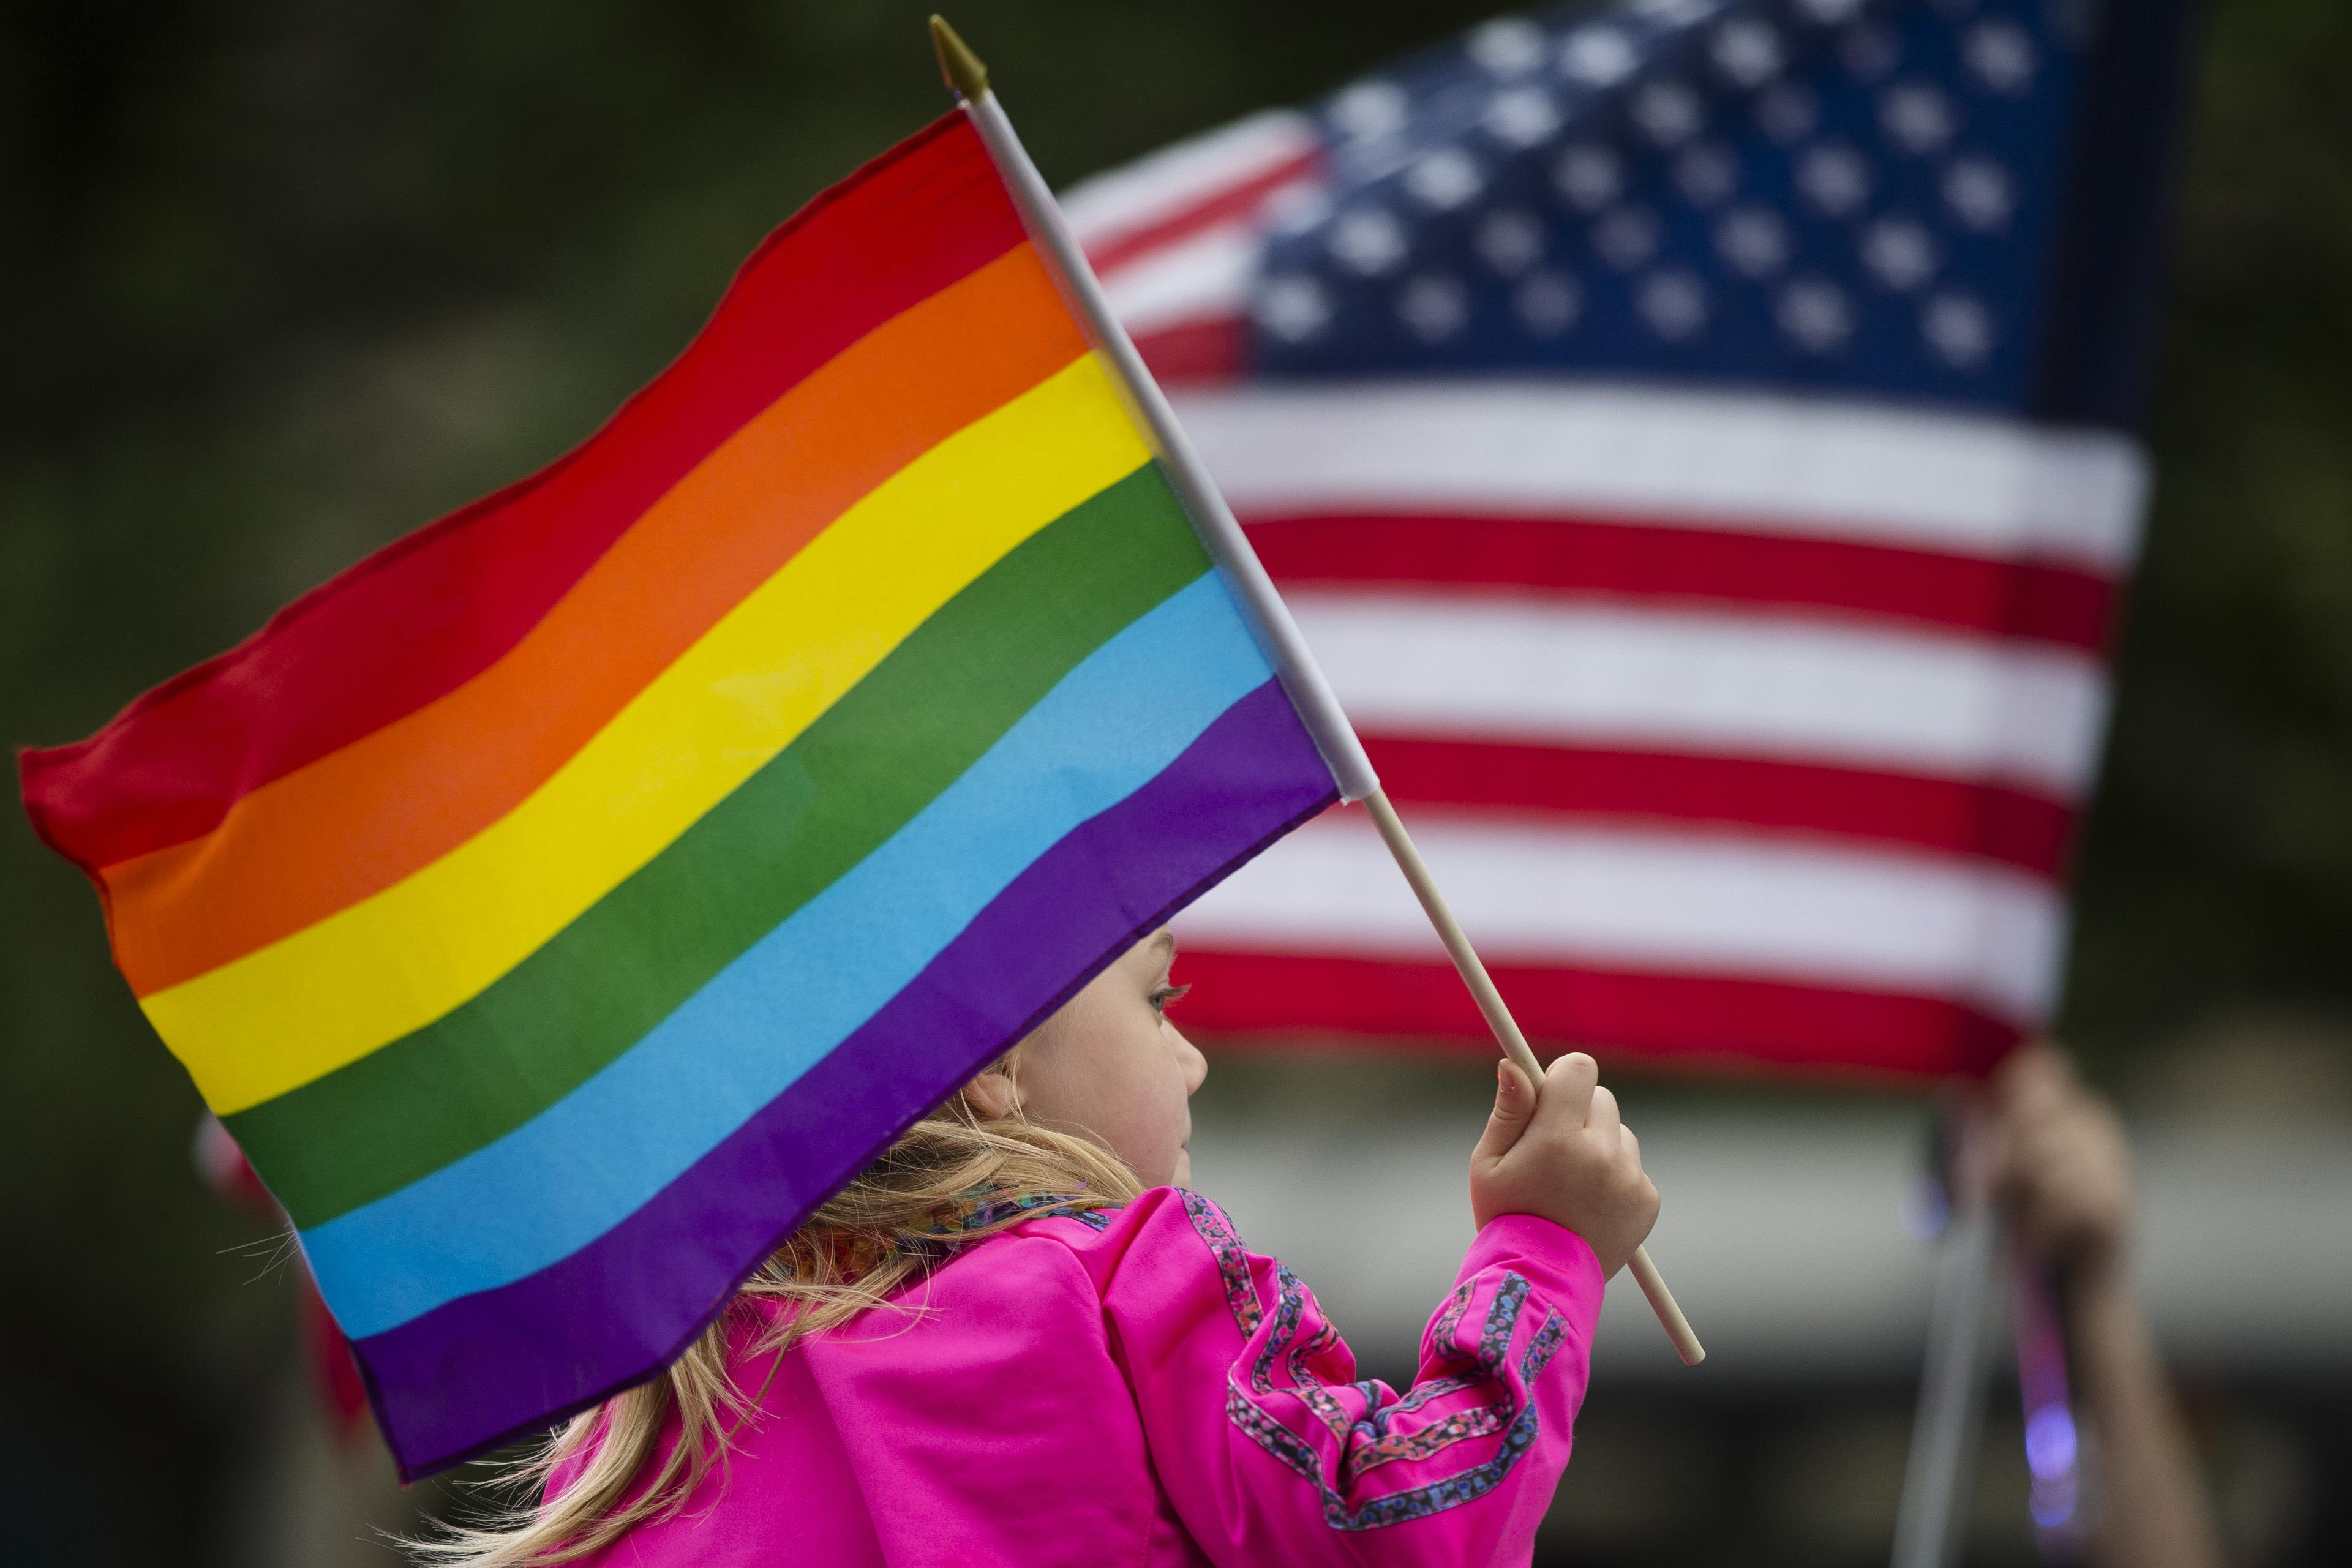 House passes Equality Act to protect against LGBTQ discrimination